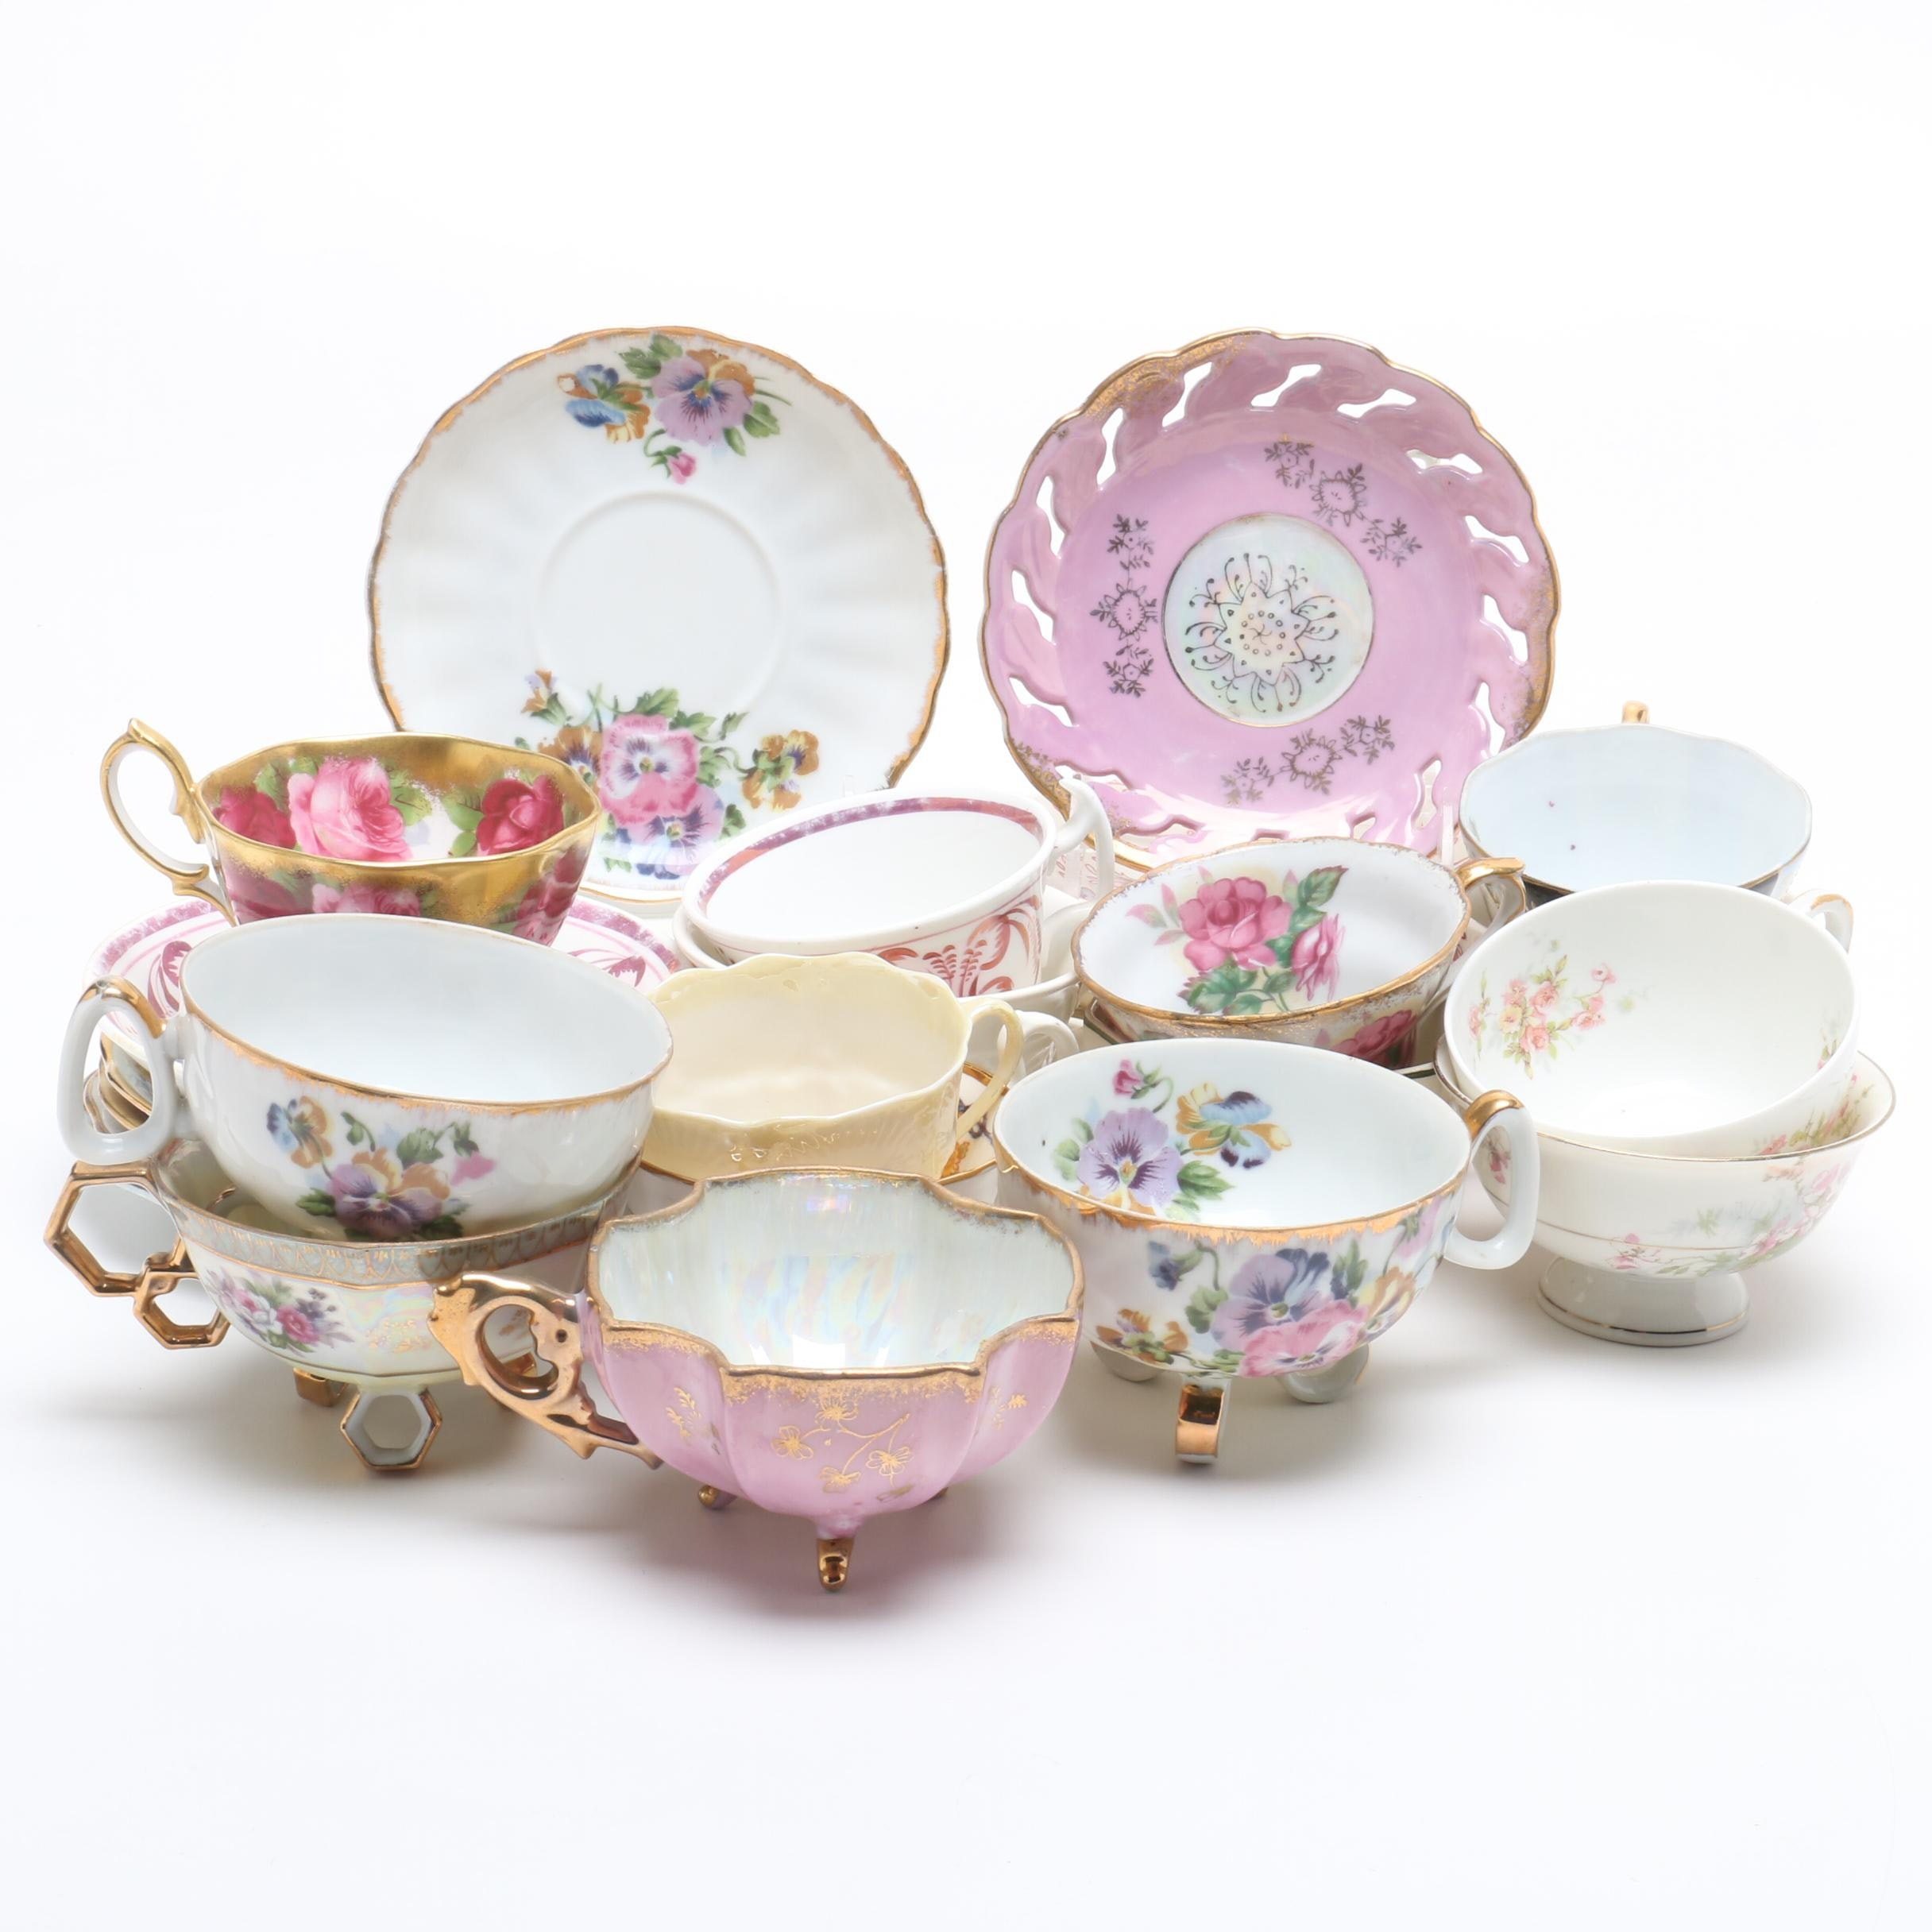 Mixed Porcelain Teacups and Saucers Including Belleek, Limoges and More